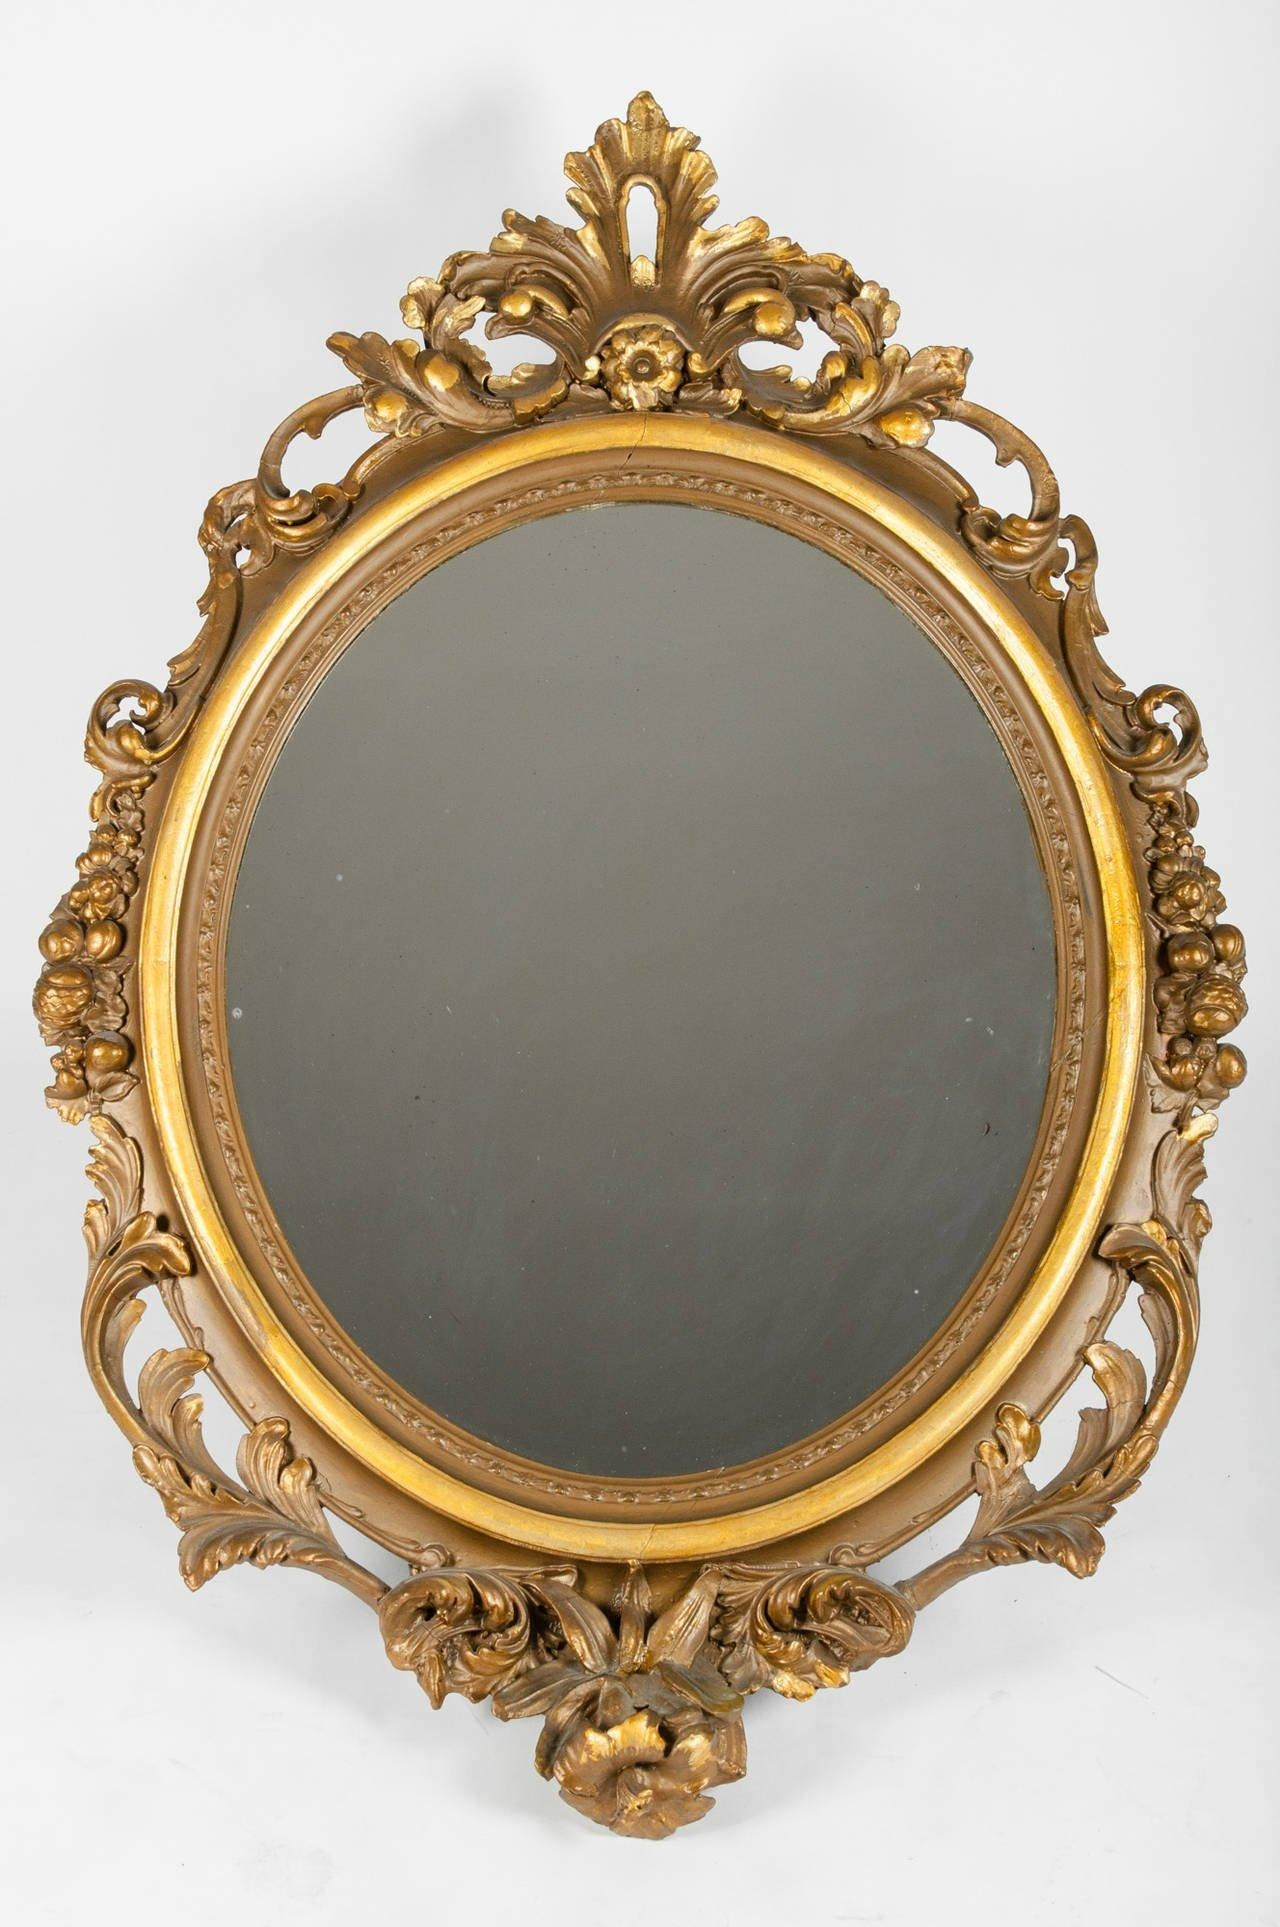 Large Gold Gilt Gesso Mirror For Sale At 1Stdibs Inside Gilt Edged Mirror (Image 16 of 20)